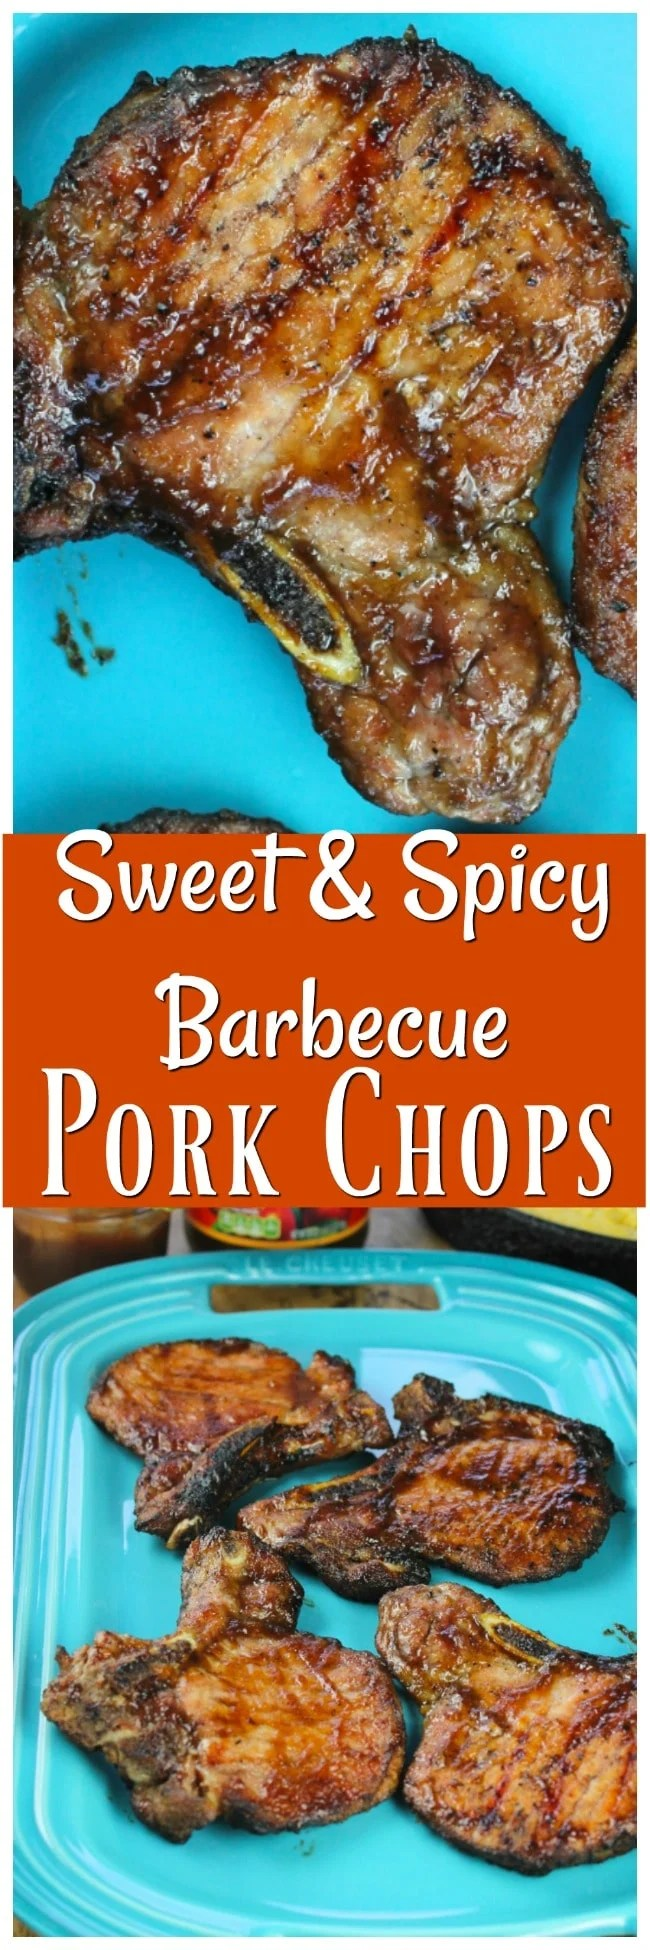 Sweet-and-Spicy-Barbecue-Pork-Chops